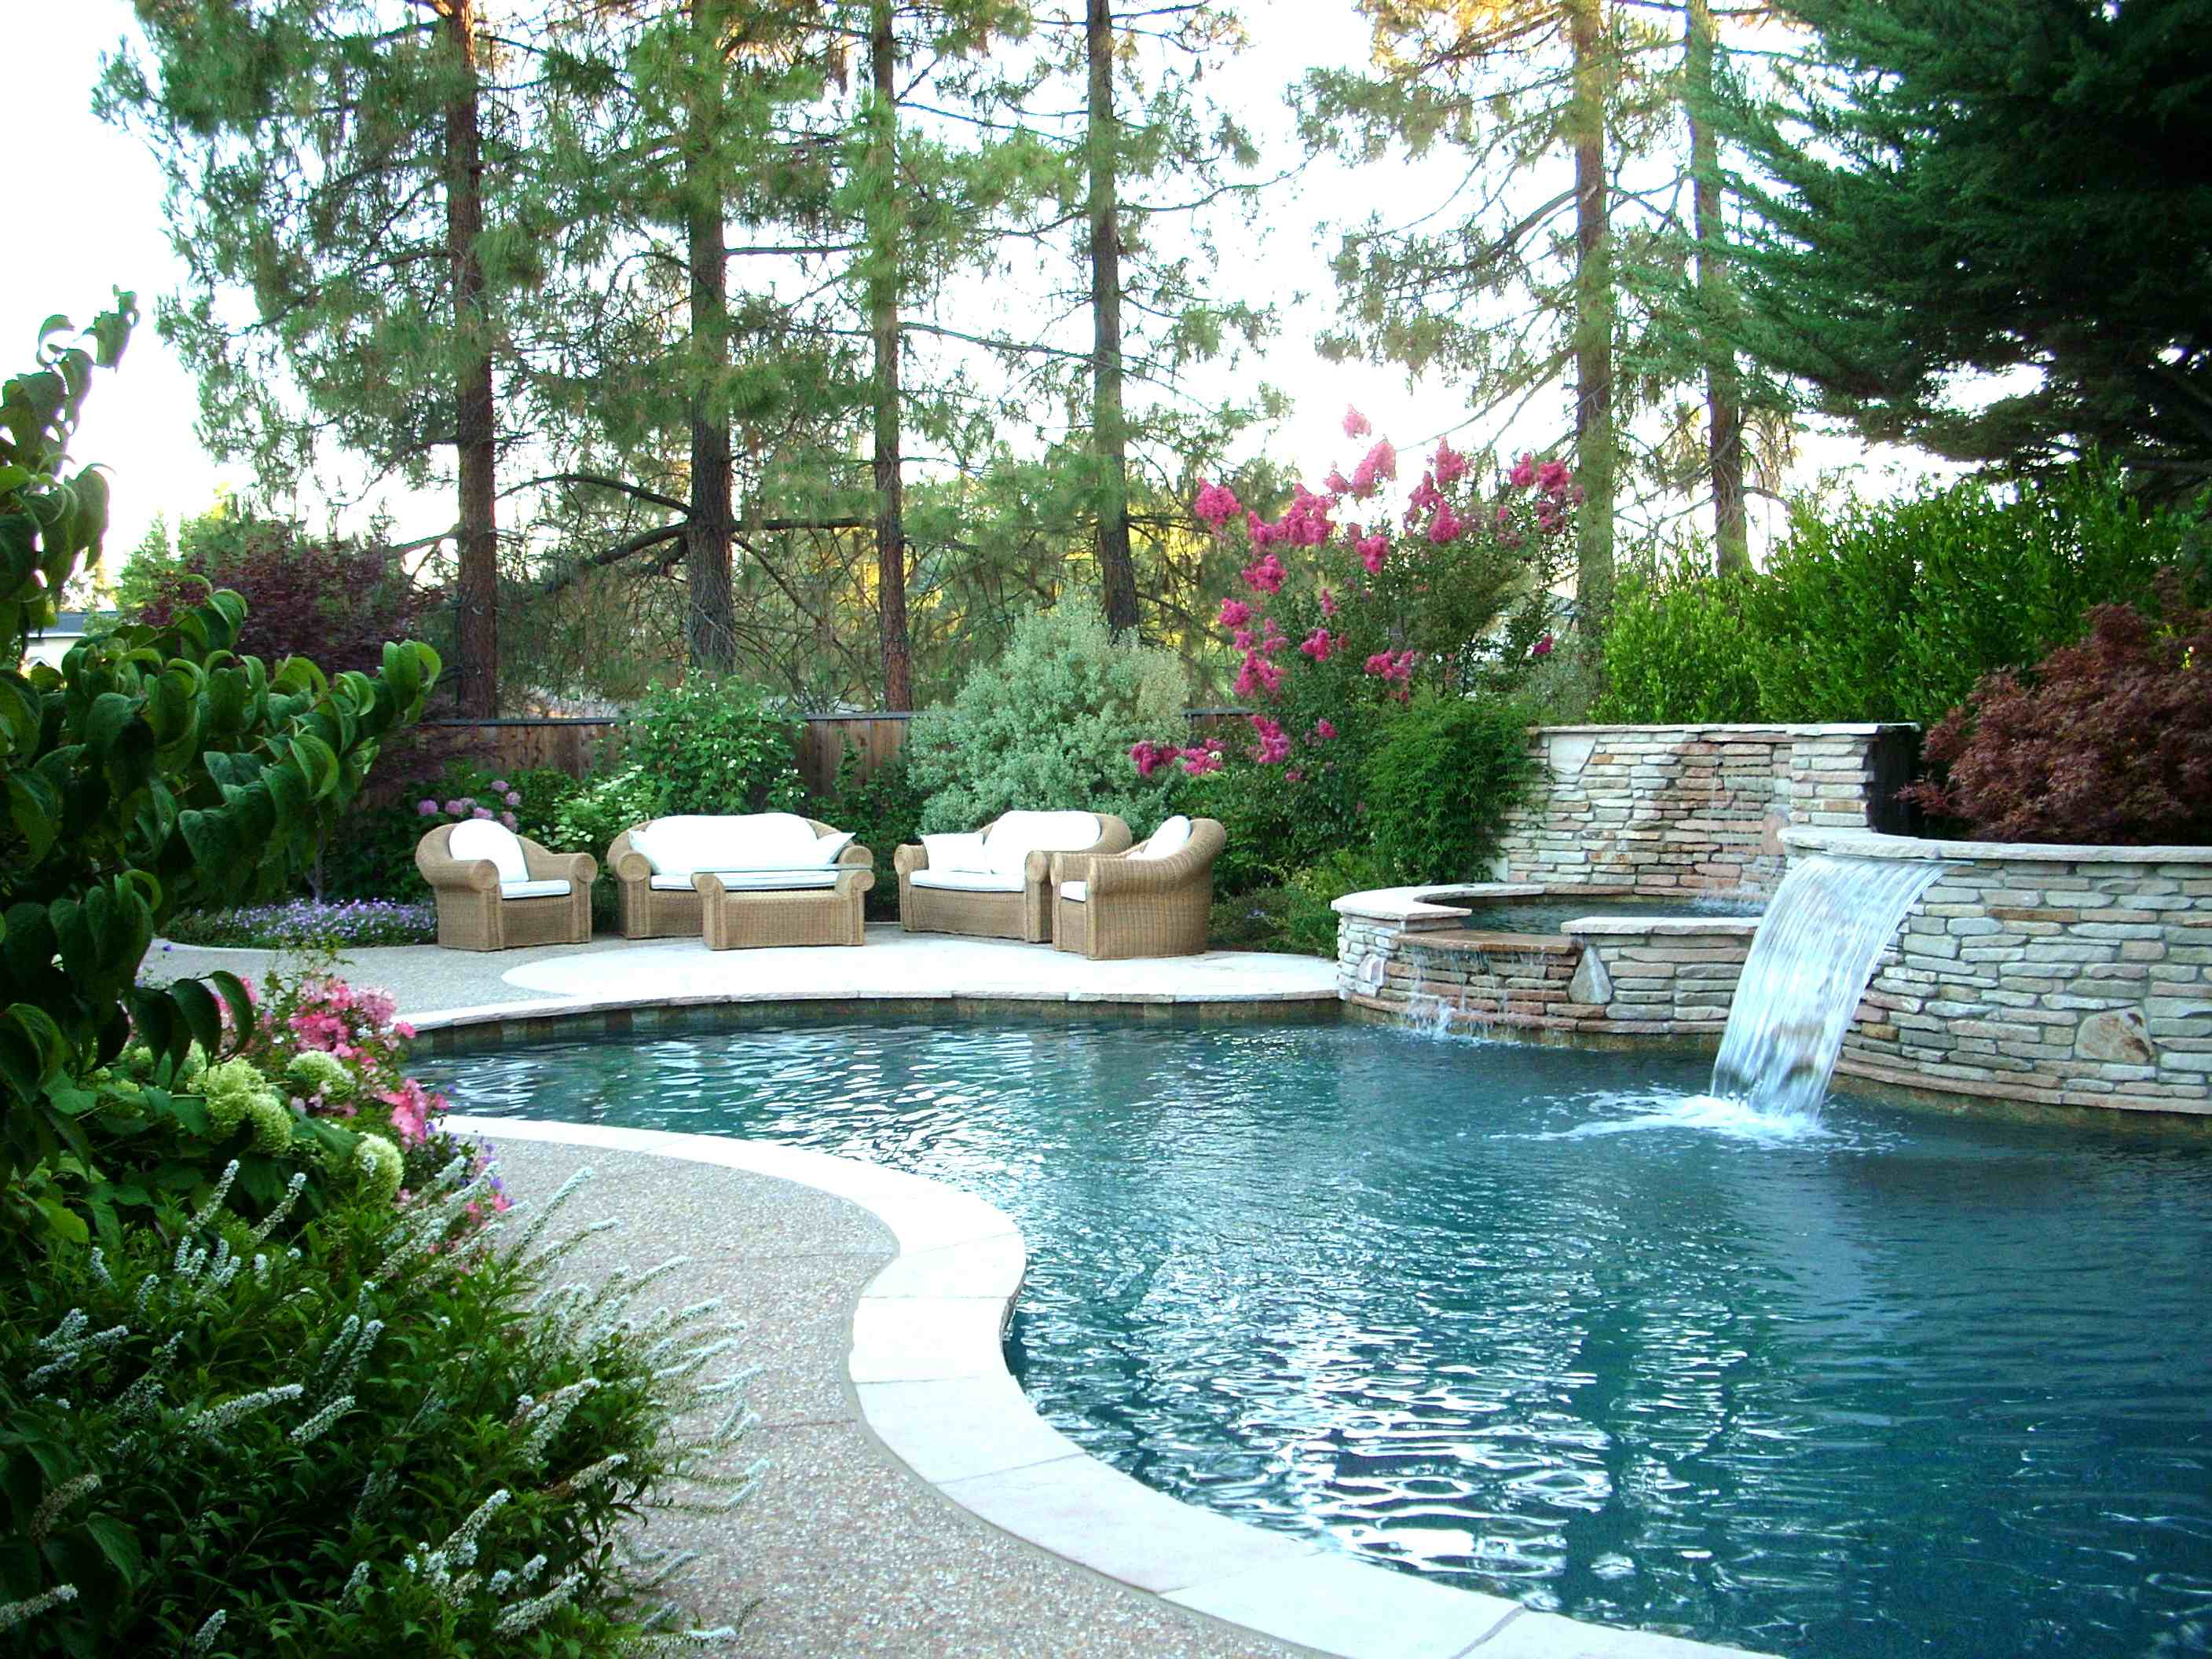 Backyard Pool Landscaping Ideas | HomesFeed on Backyard Pool Landscape Designs id=30581